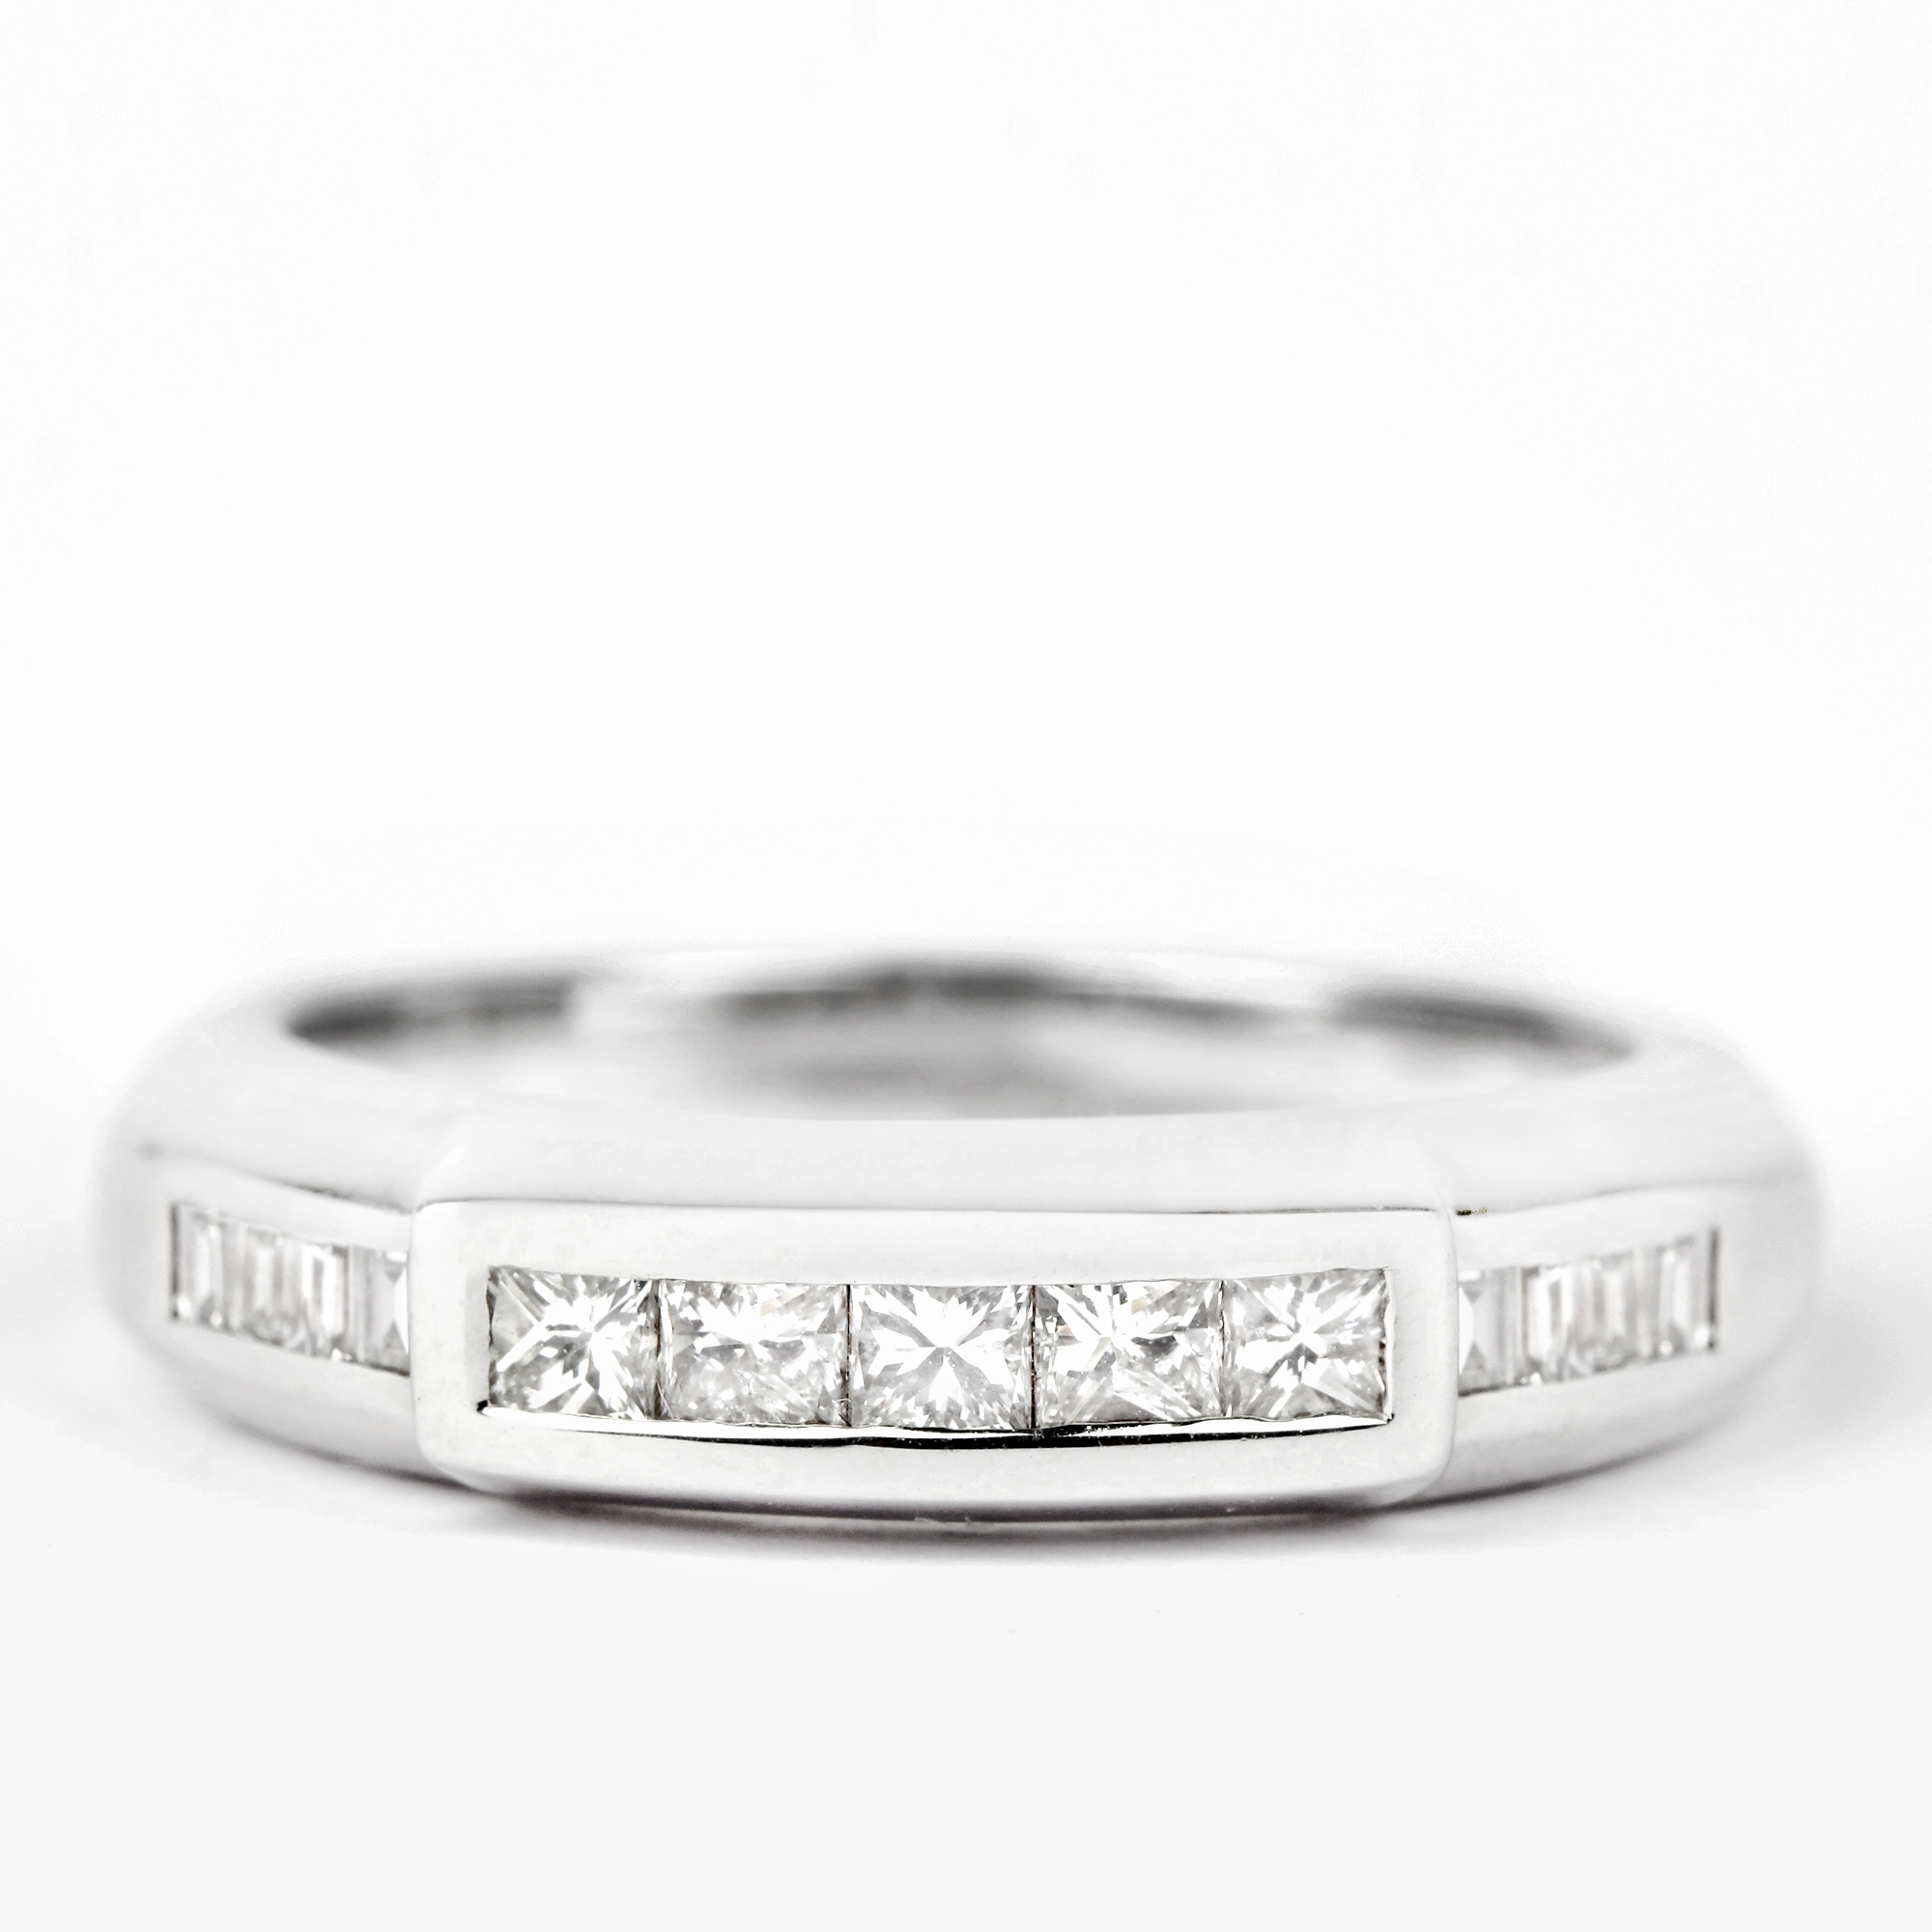 3/4 CT Princess and Baguette Cut Diamond Band Ring in Channel Setting